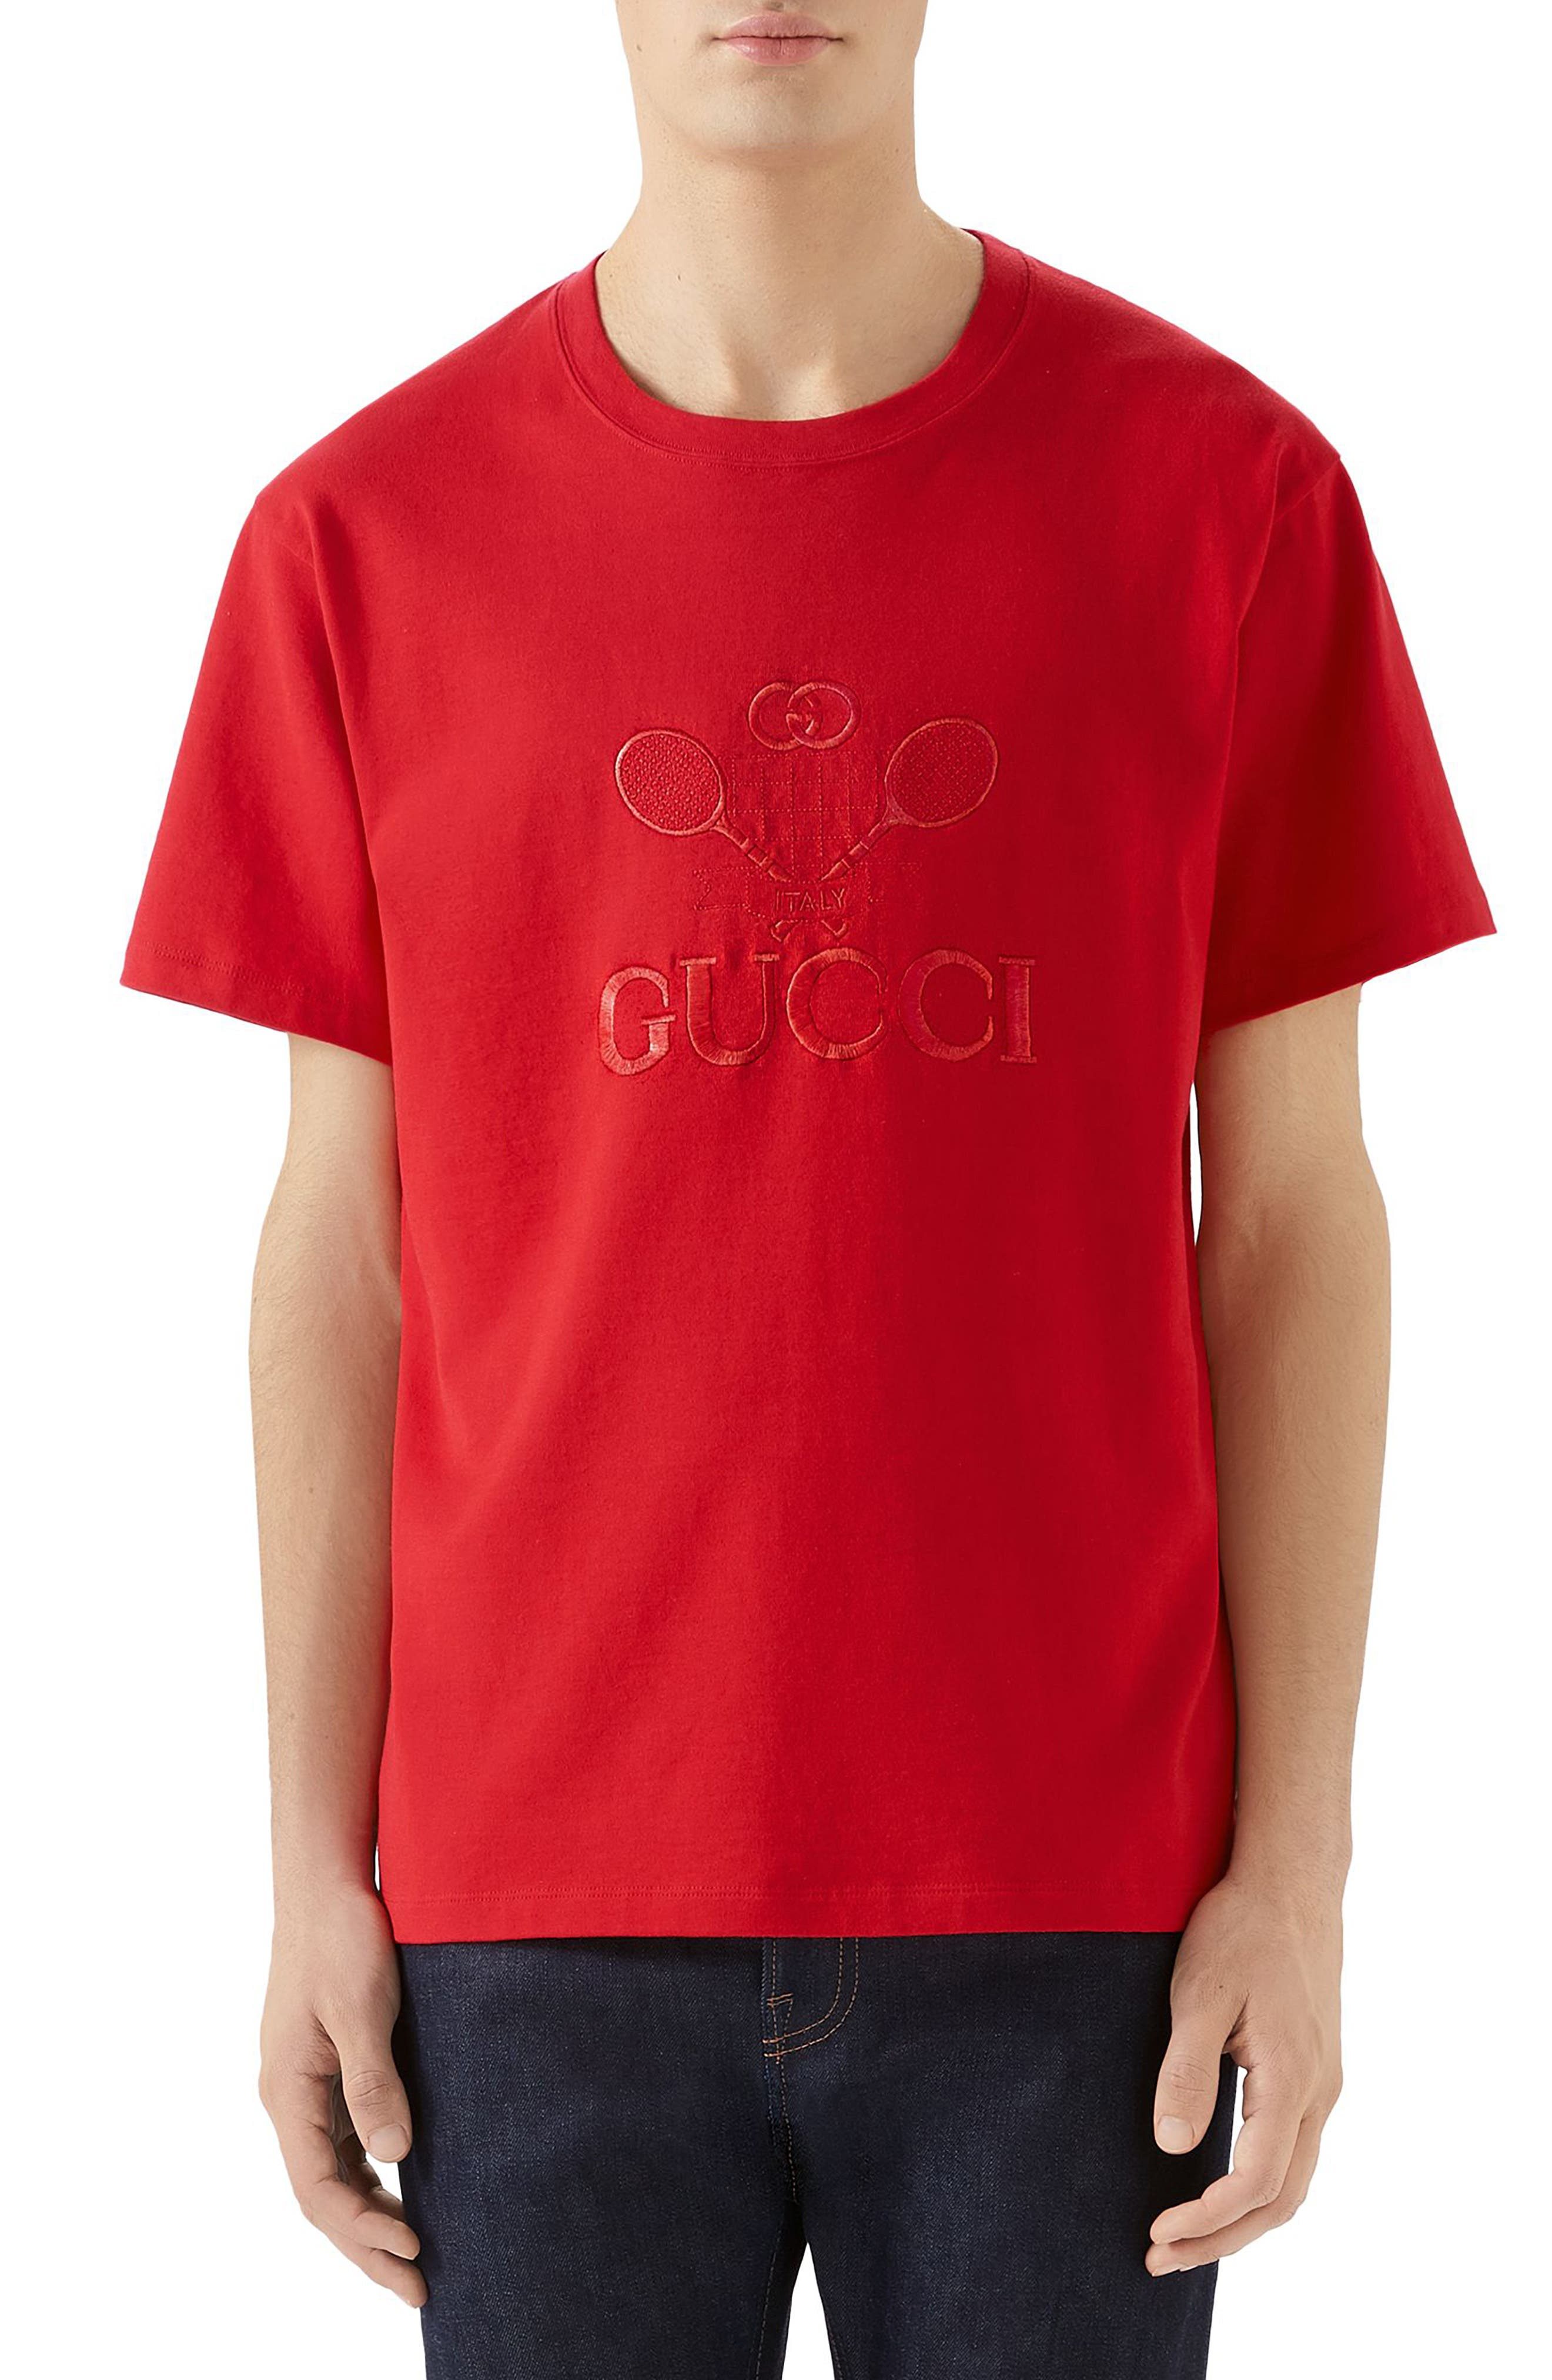 eef5cf508 Men's Gucci T-Shirts, Tank Tops, & Graphic Tees | Nordstrom